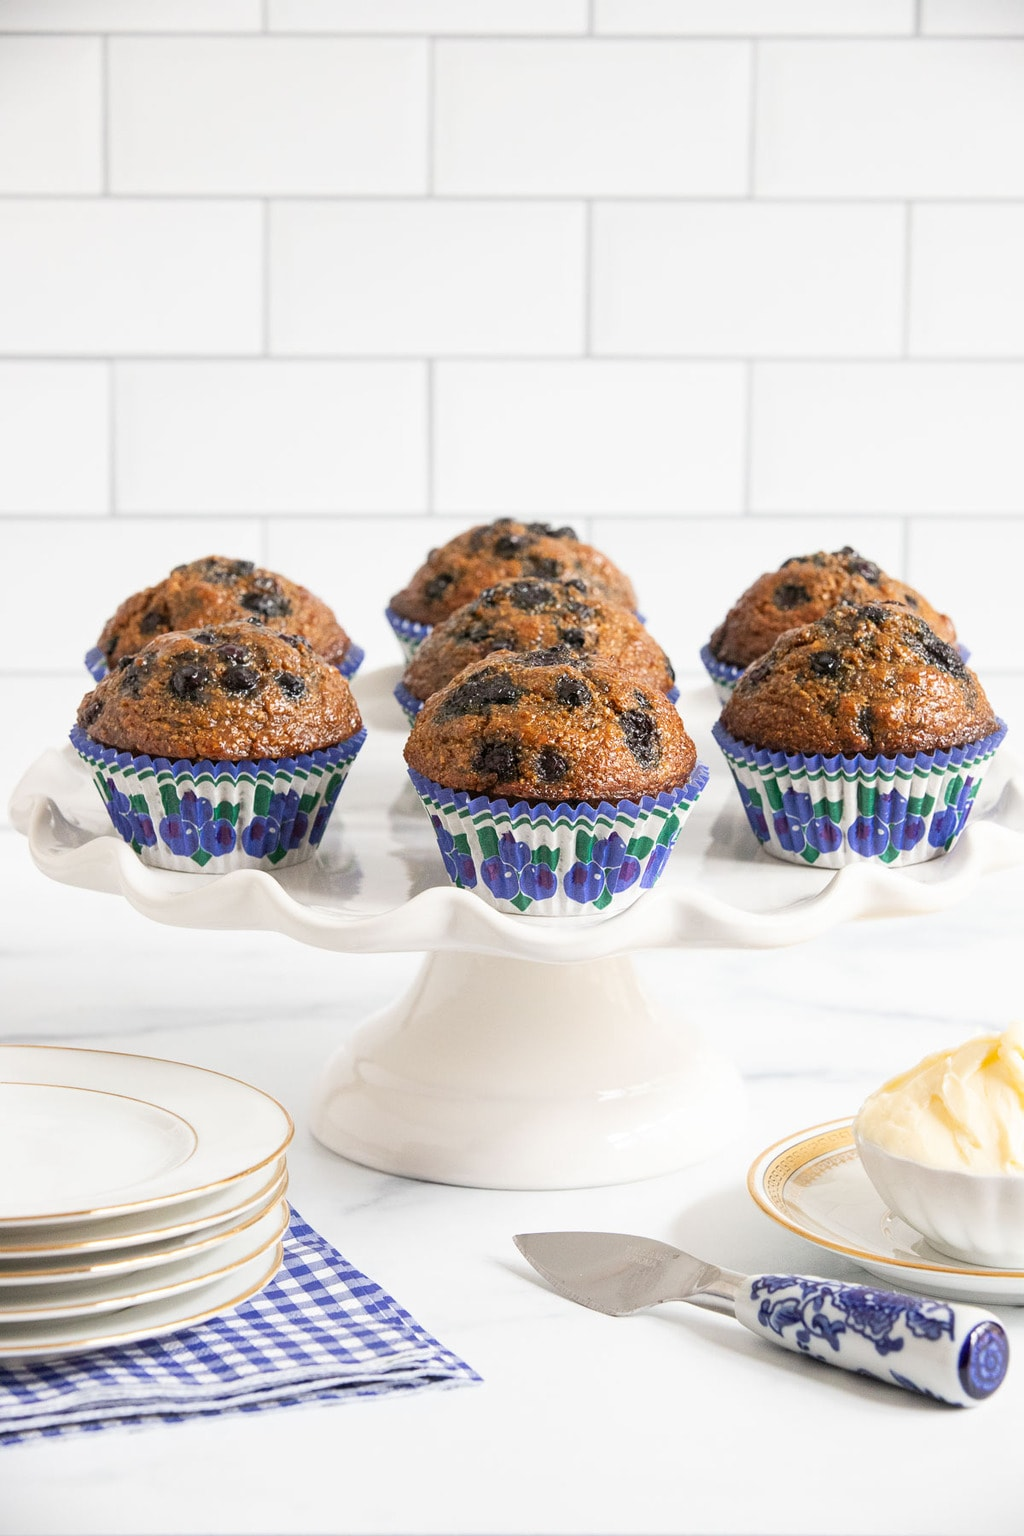 Vertical photo of a batch of Honey-Glazed Blueberry Bran Muffins in green, blue and white cupcake liners on a scalloped pedestal plate.